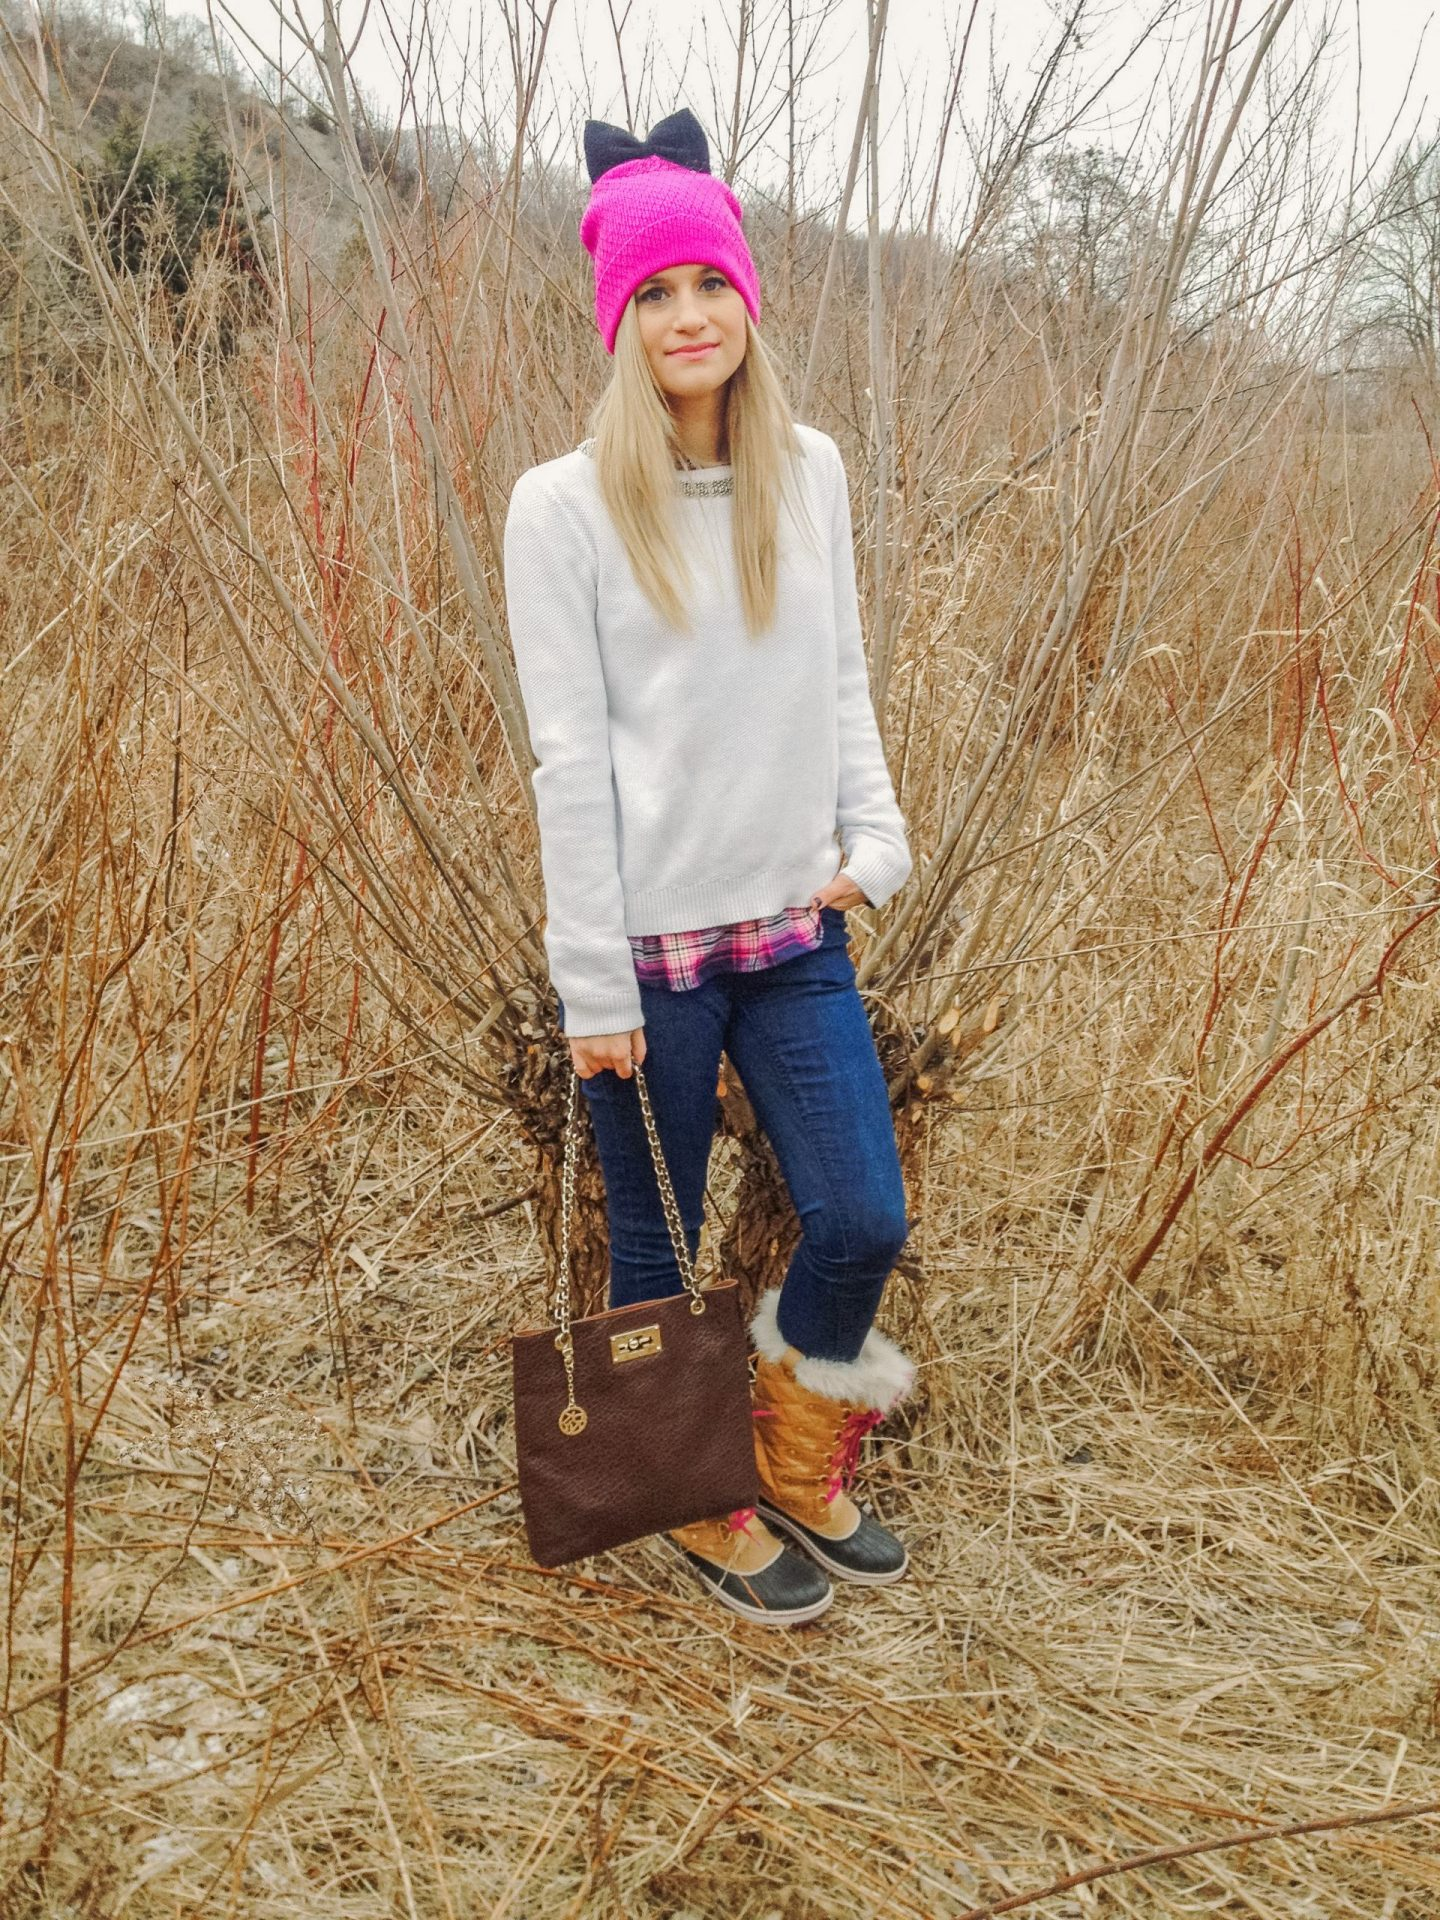 Everyday looks in the winter don't have to be boring. Pulling off looking cute while staying warm